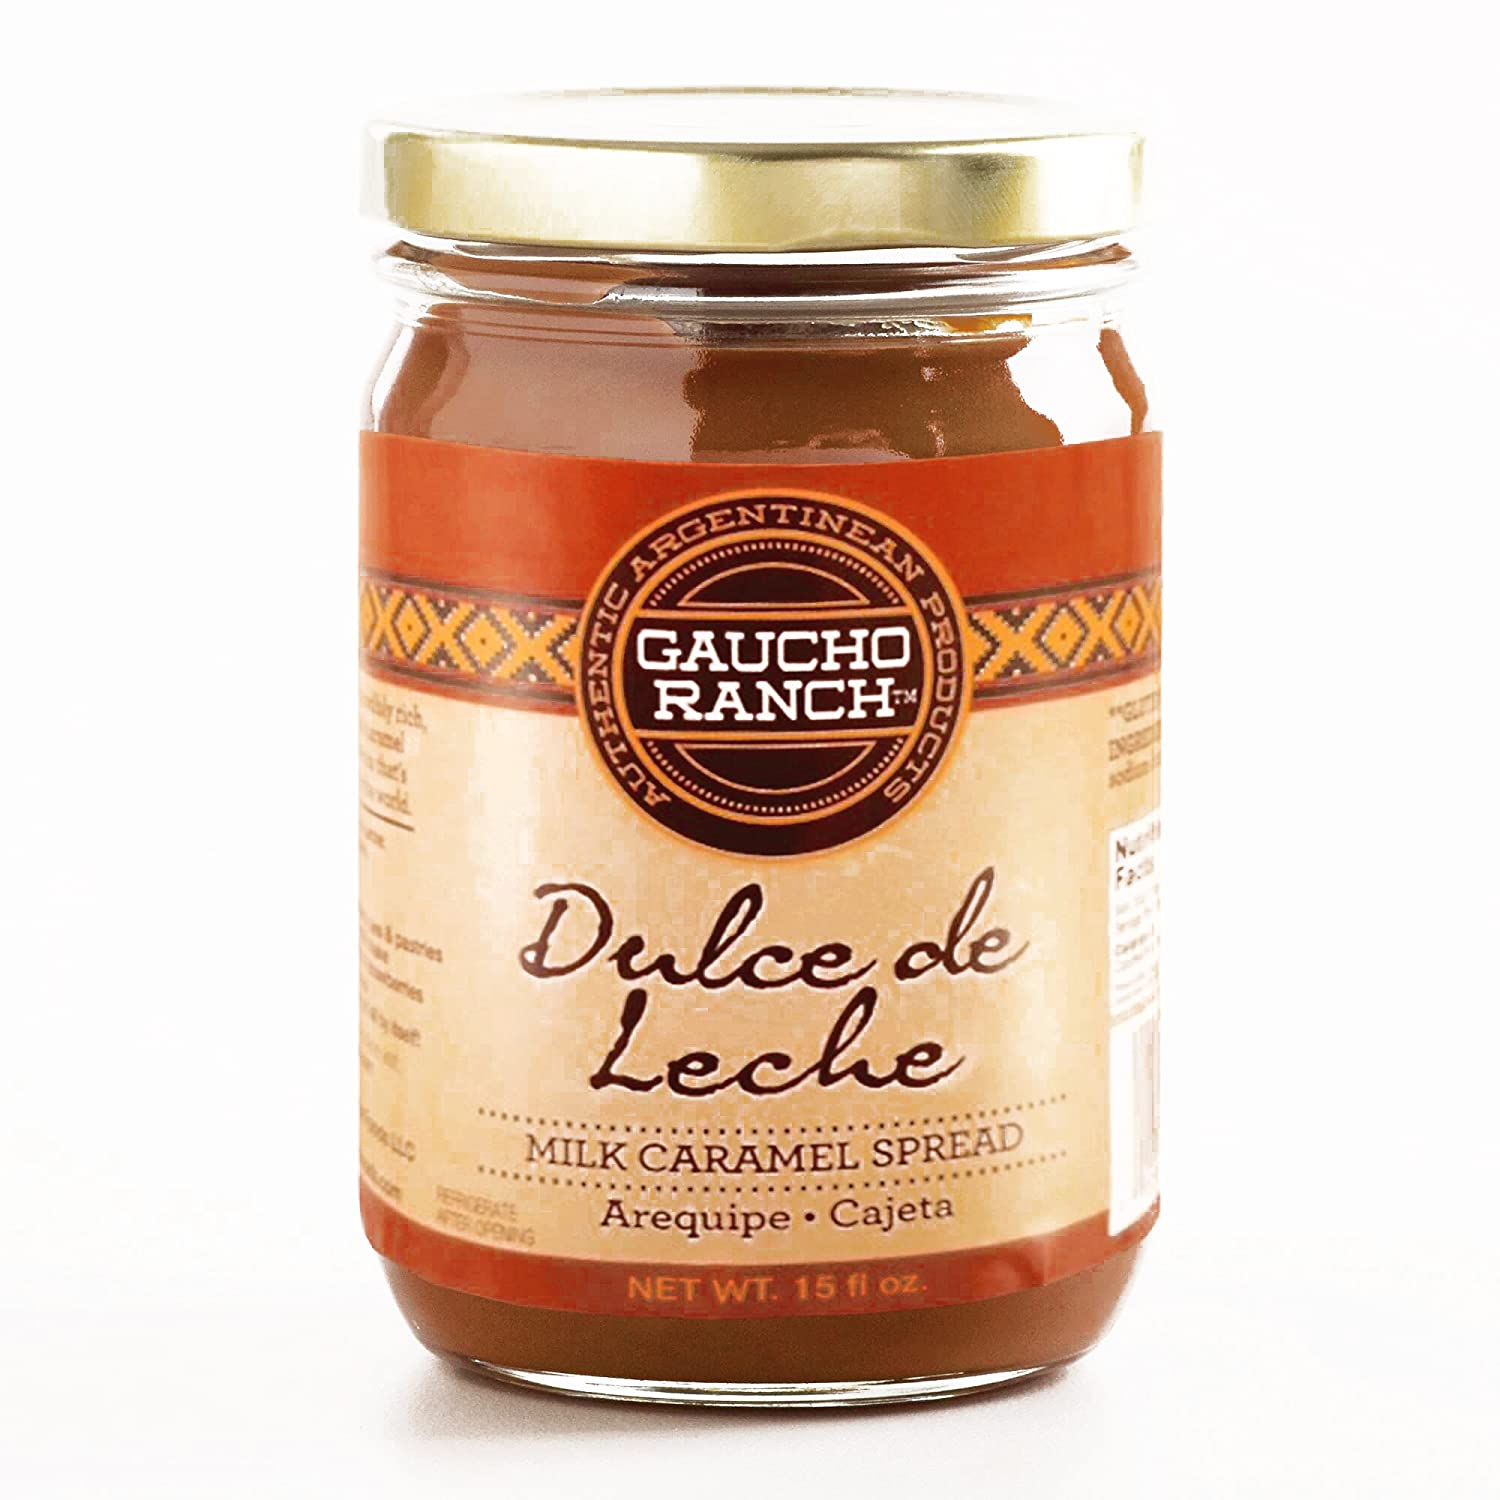 Amazon.com : Gaucho Ranch Dulce de Leche 15 oz each (4 Items Per Order, not per case) : Grocery & Gourmet Food